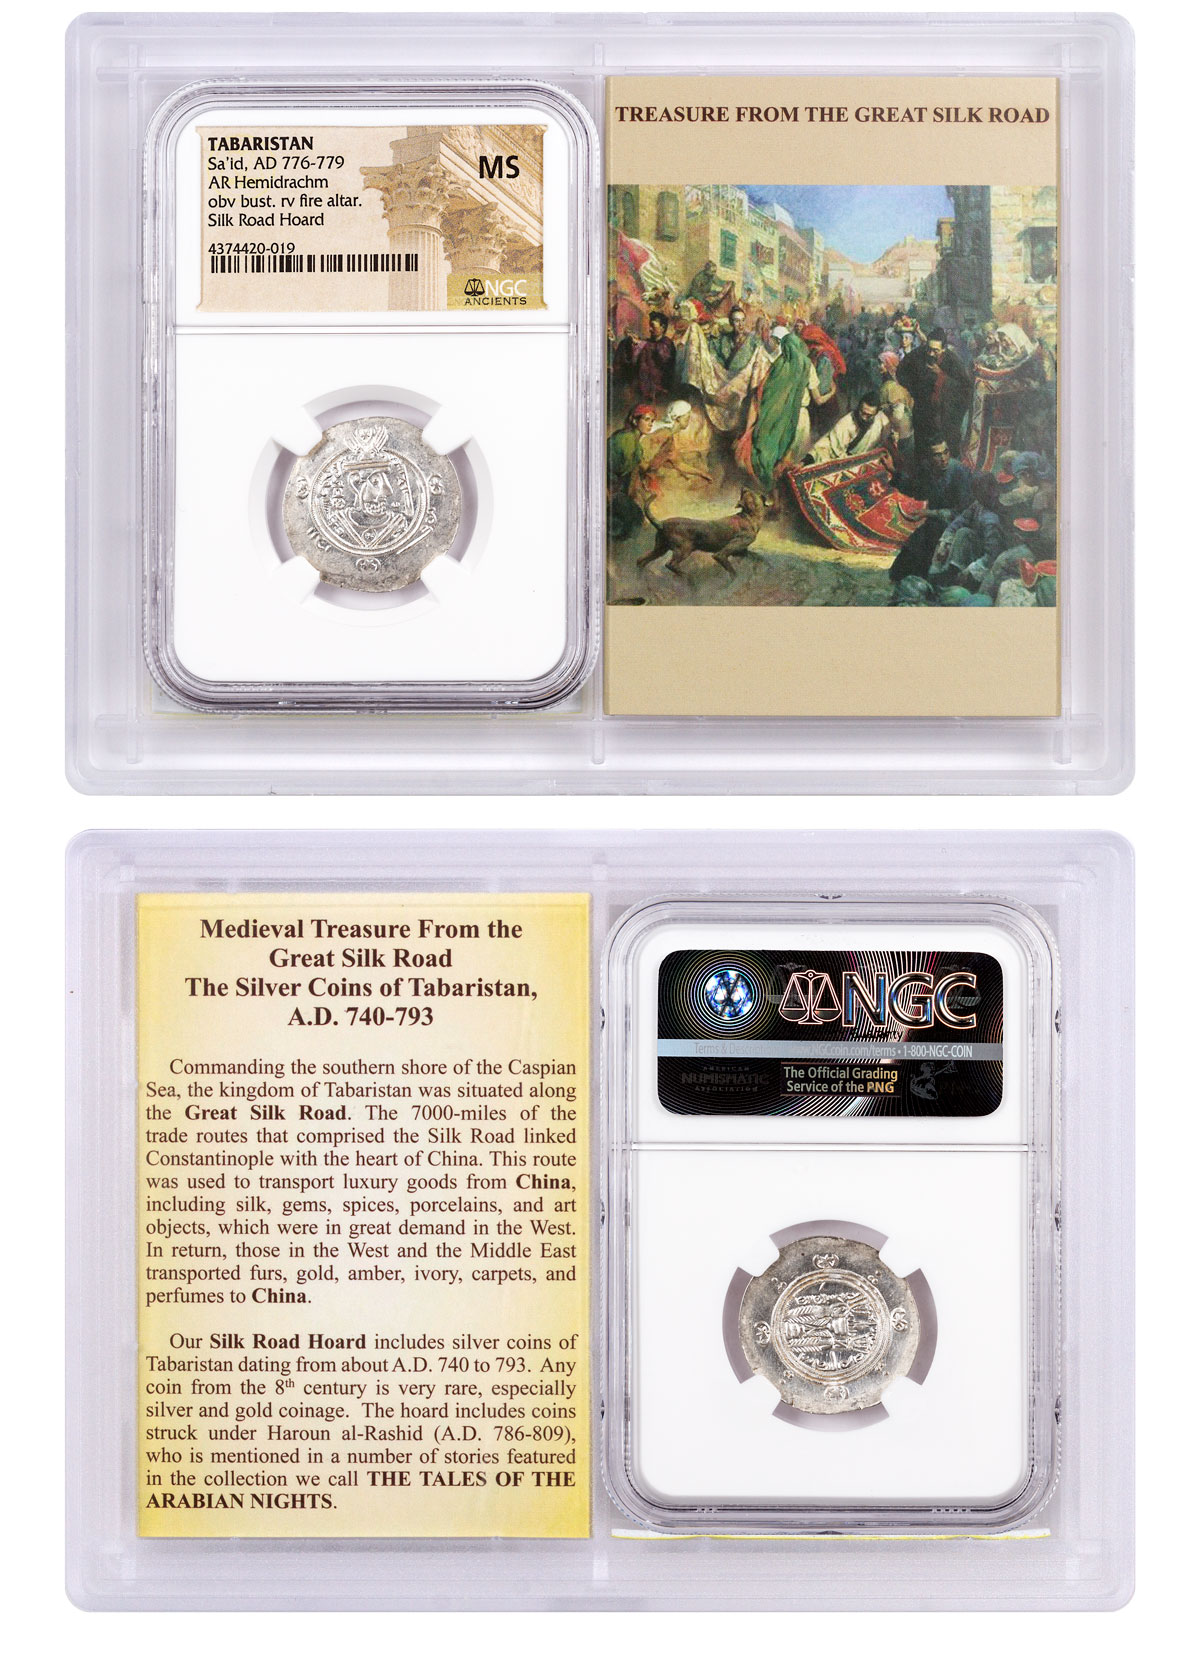 Tabaristan, Silver Hemidrachm of Sa'id (AD 776-779) - obv. Bust/rv. Fire Altar - Silk Road Hoard NGC MS (Story Vault)